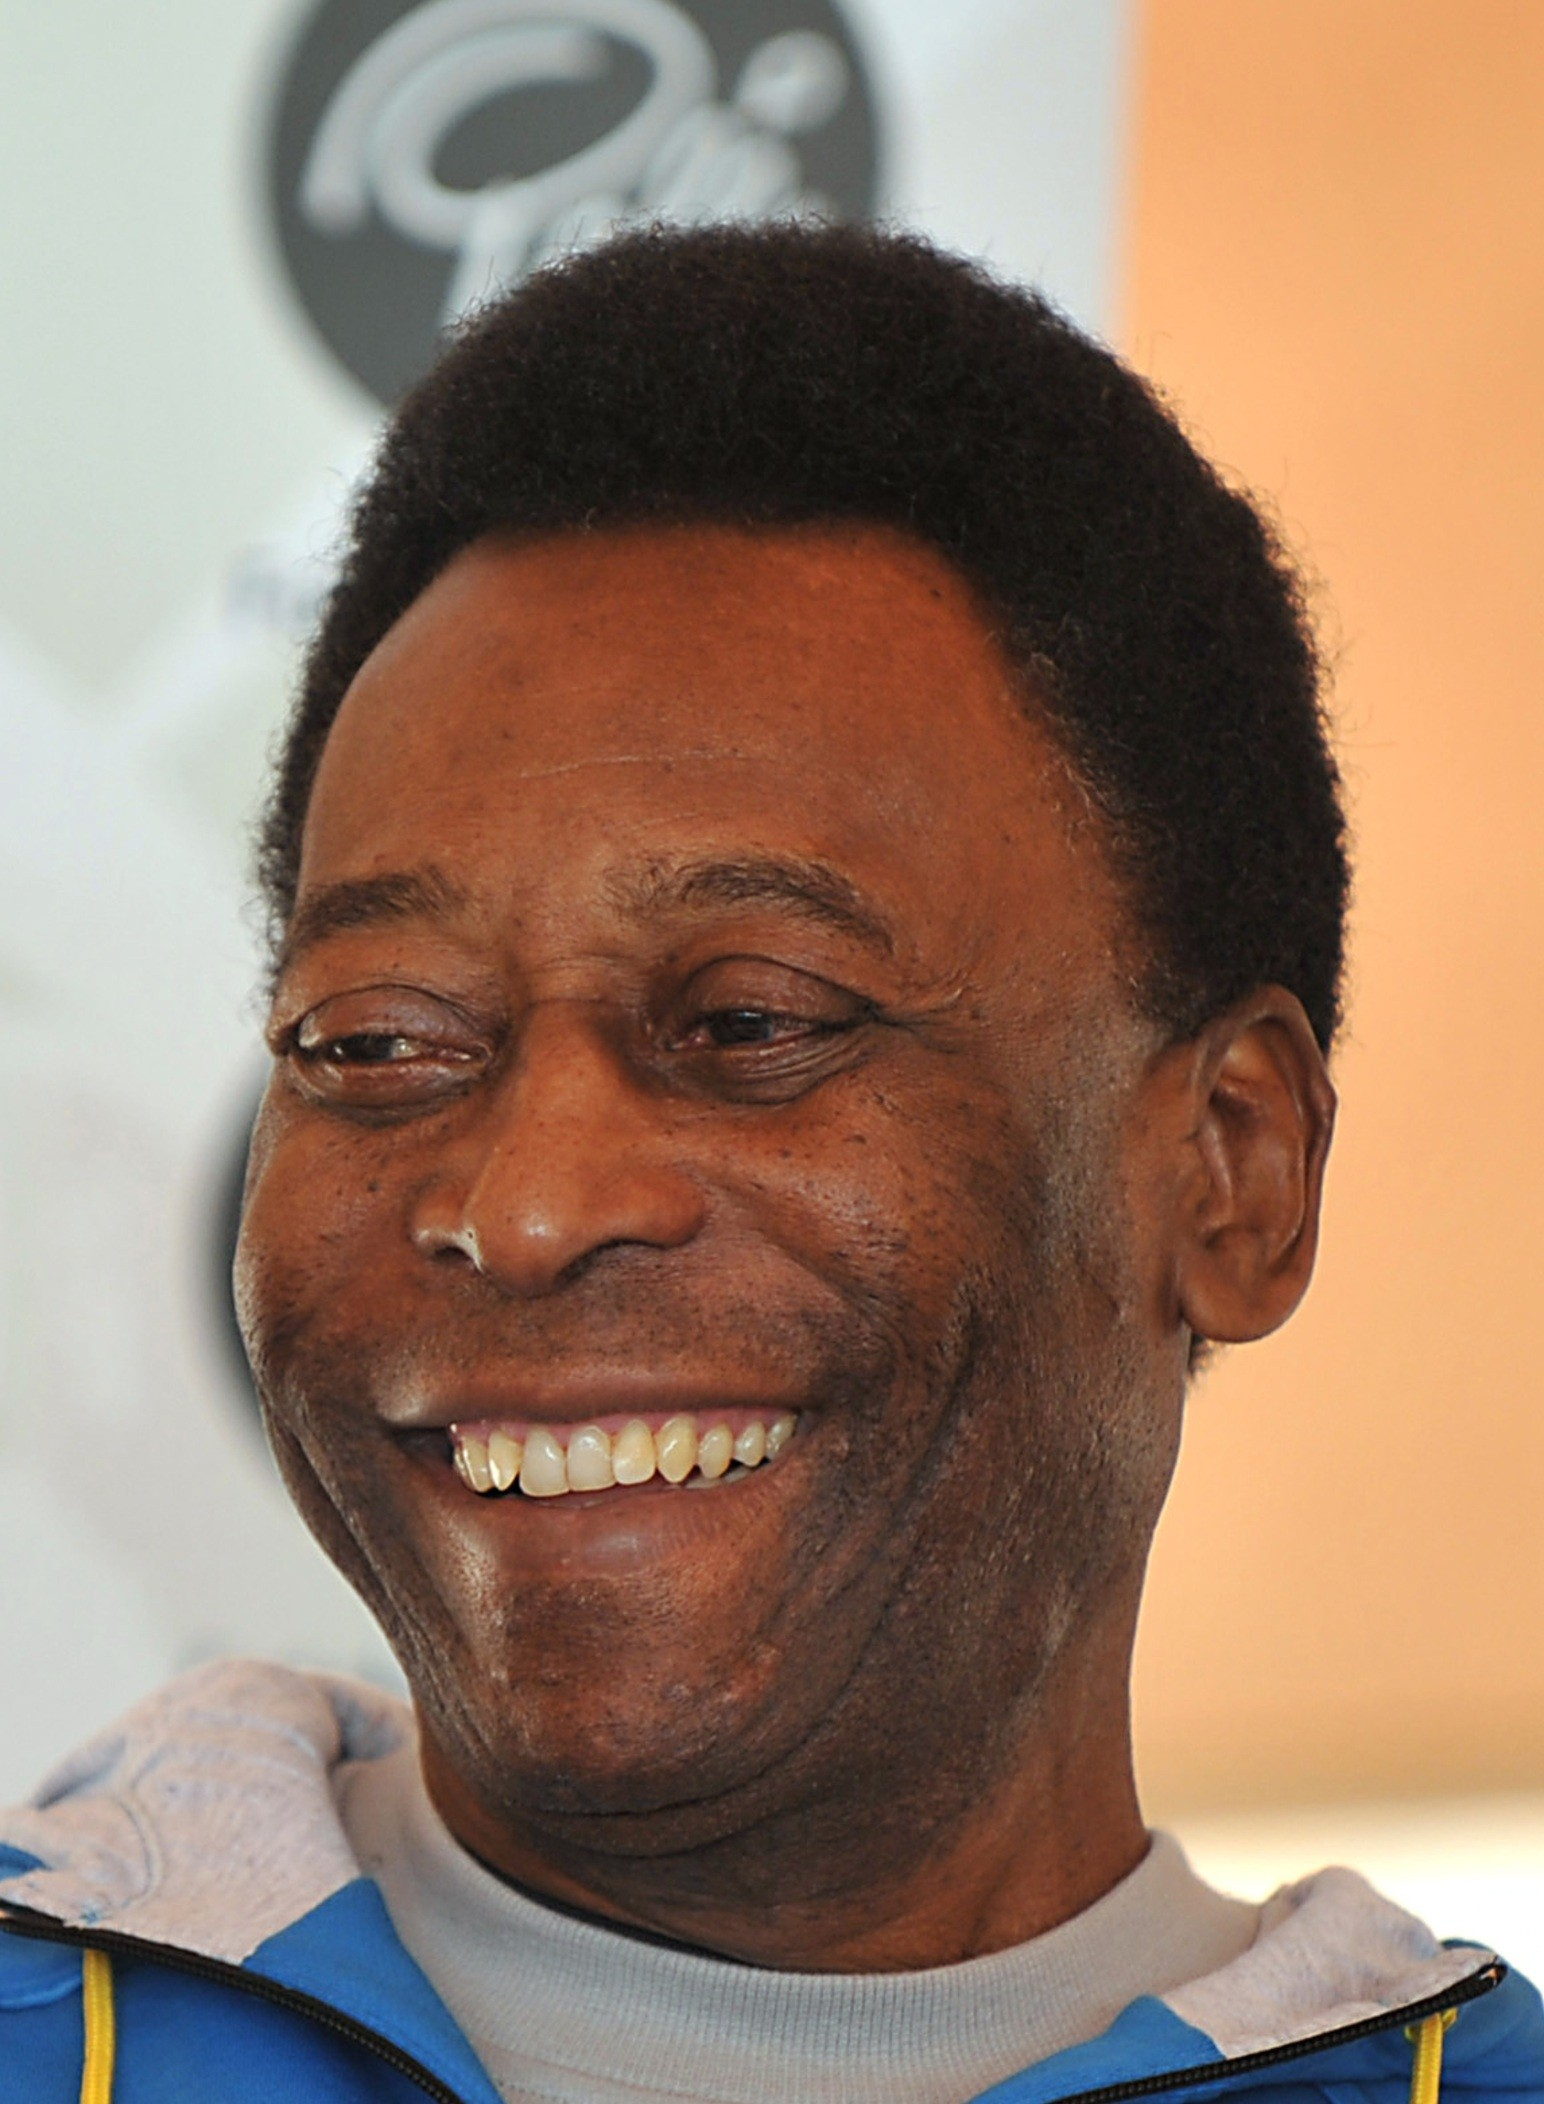 Sports News Roundup: Soccer-Pele to leave intensive care this week, says daughter; Golf-Zalatoris 'over the moon' at being PGA Tour rookie of the year and more